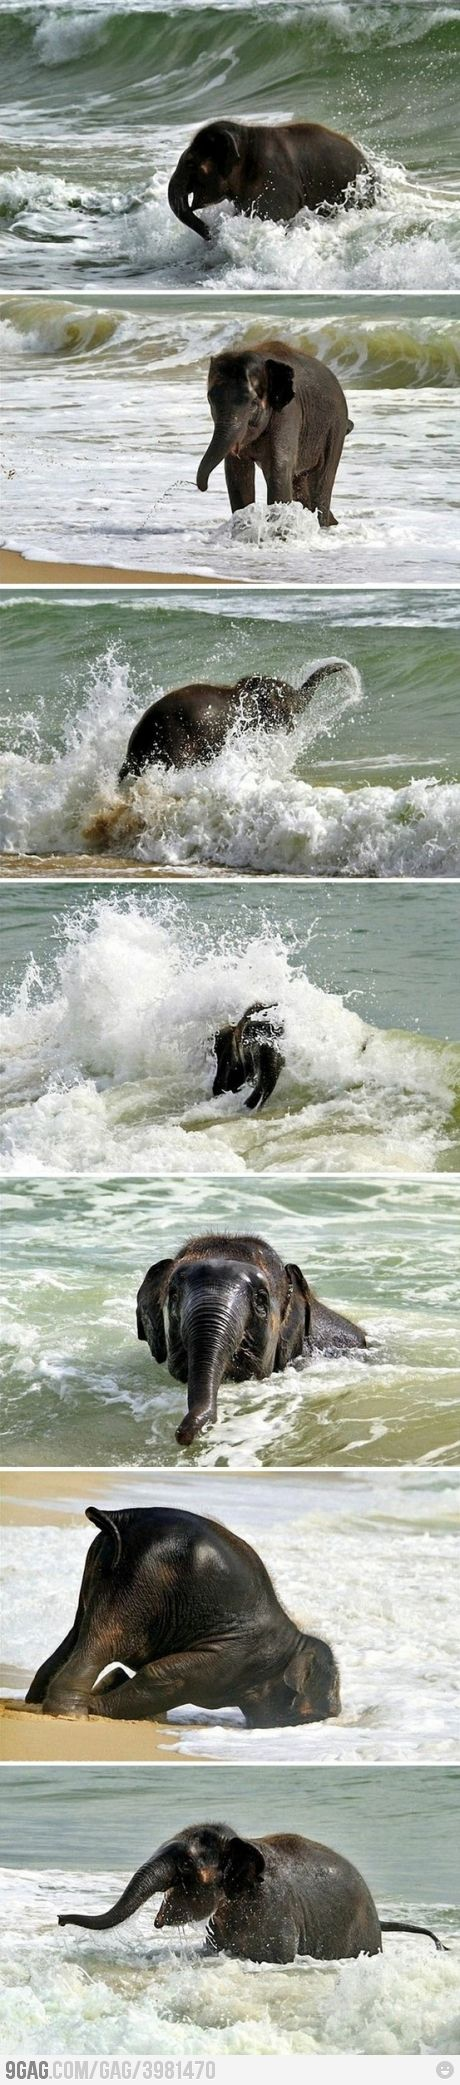 Cute and irrelephant: At The Beaches, Happy Baby, Baby Elephants, First Time, Happy Elephants, The Faces, The Ocean, Happy Happy Happy, The Waves